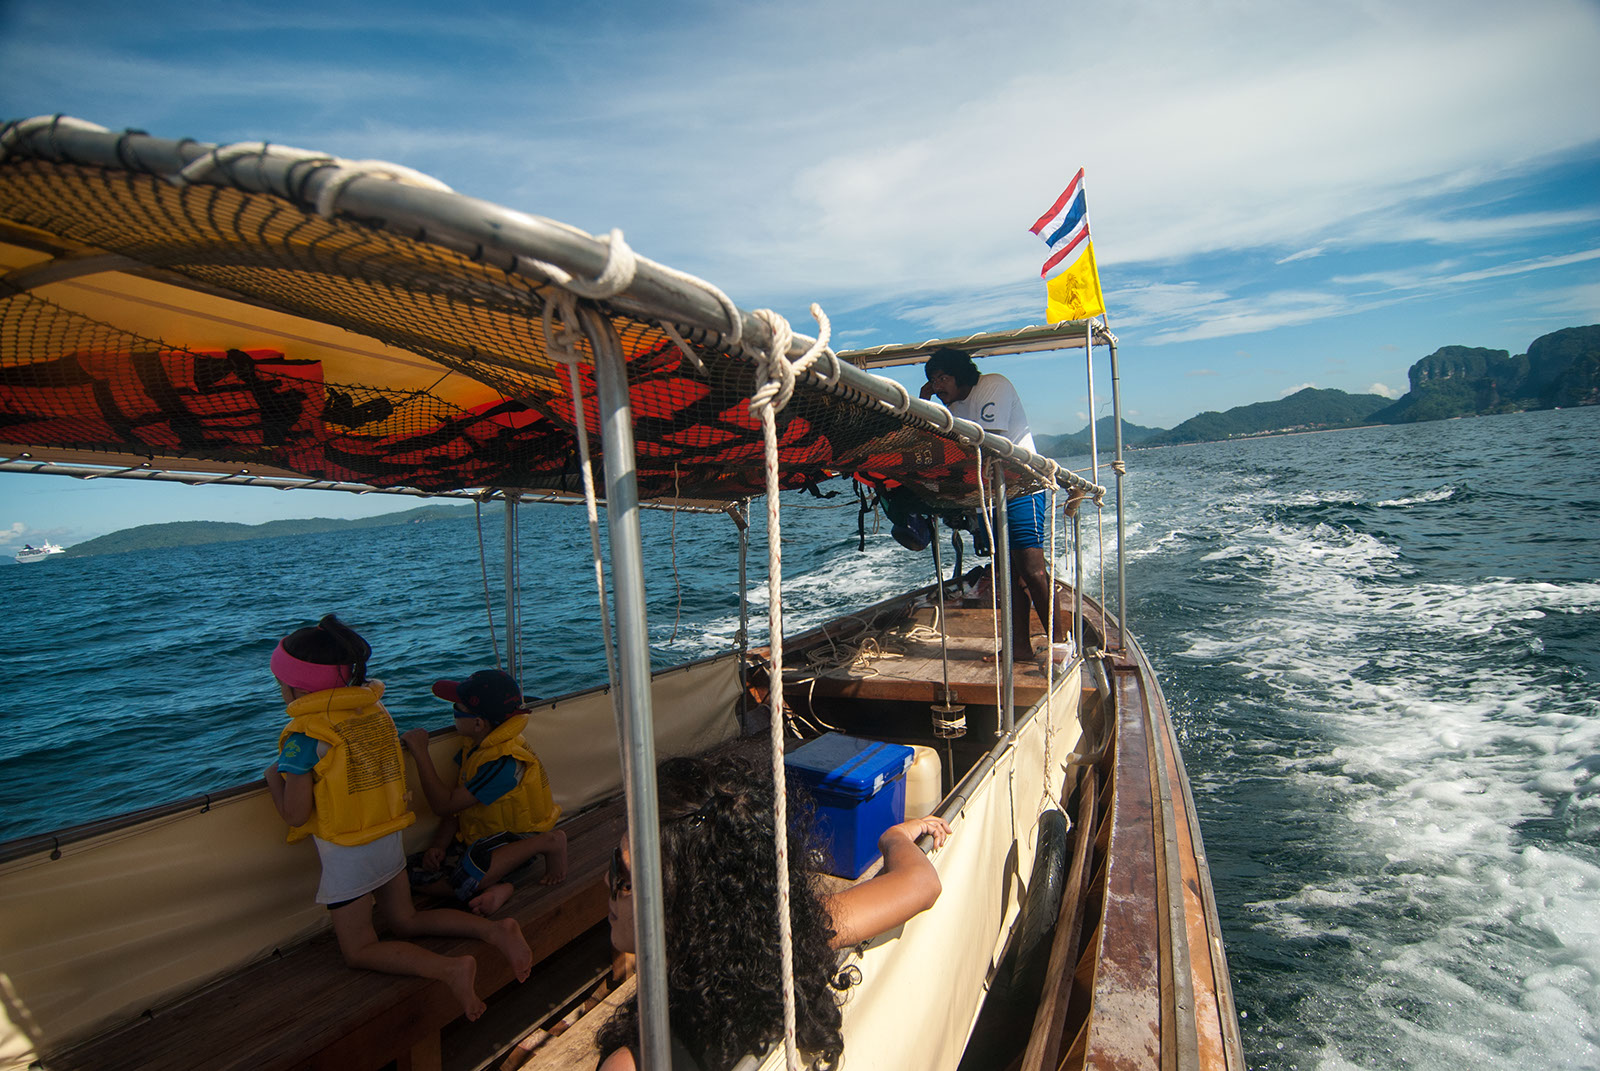 Longtail boat Island Hopping to Krabi 4 Islands